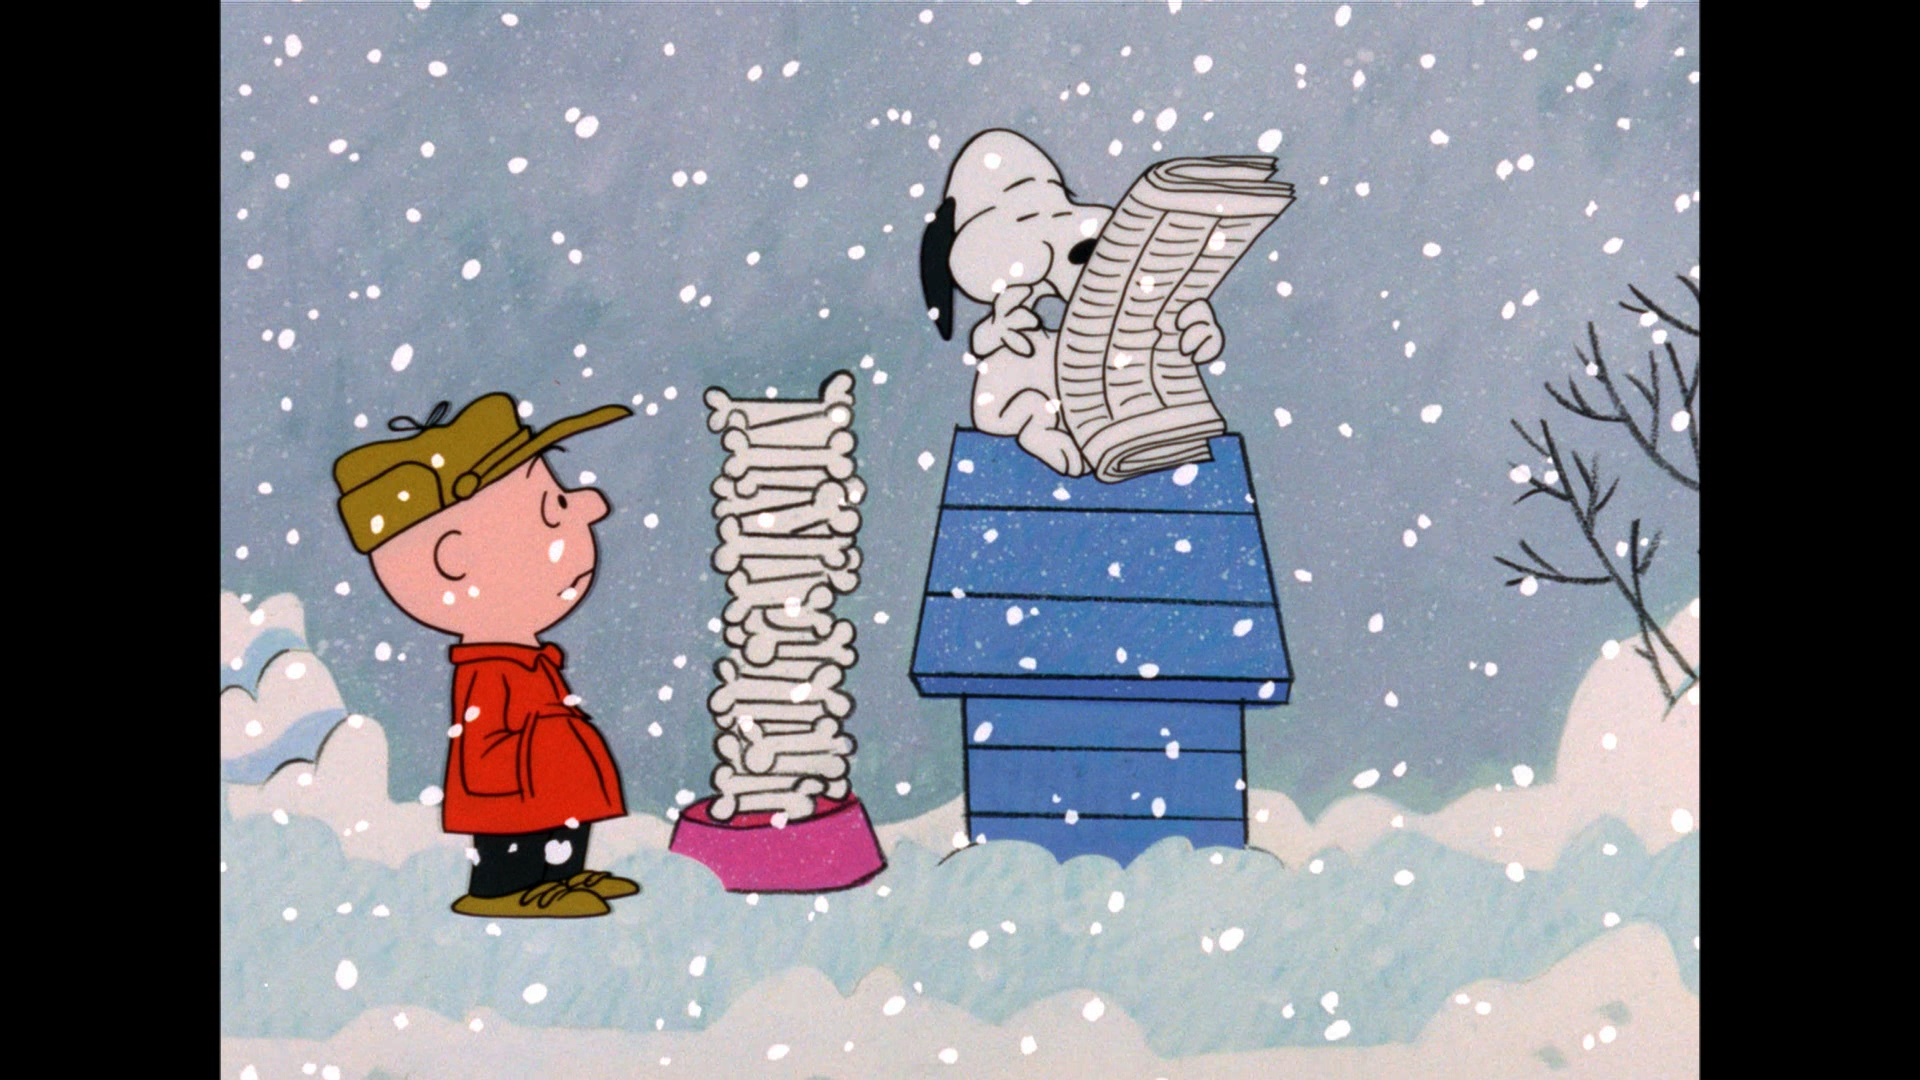 A Charlie Brown Christmas - Page 14648 - Movie HD Wallpapers